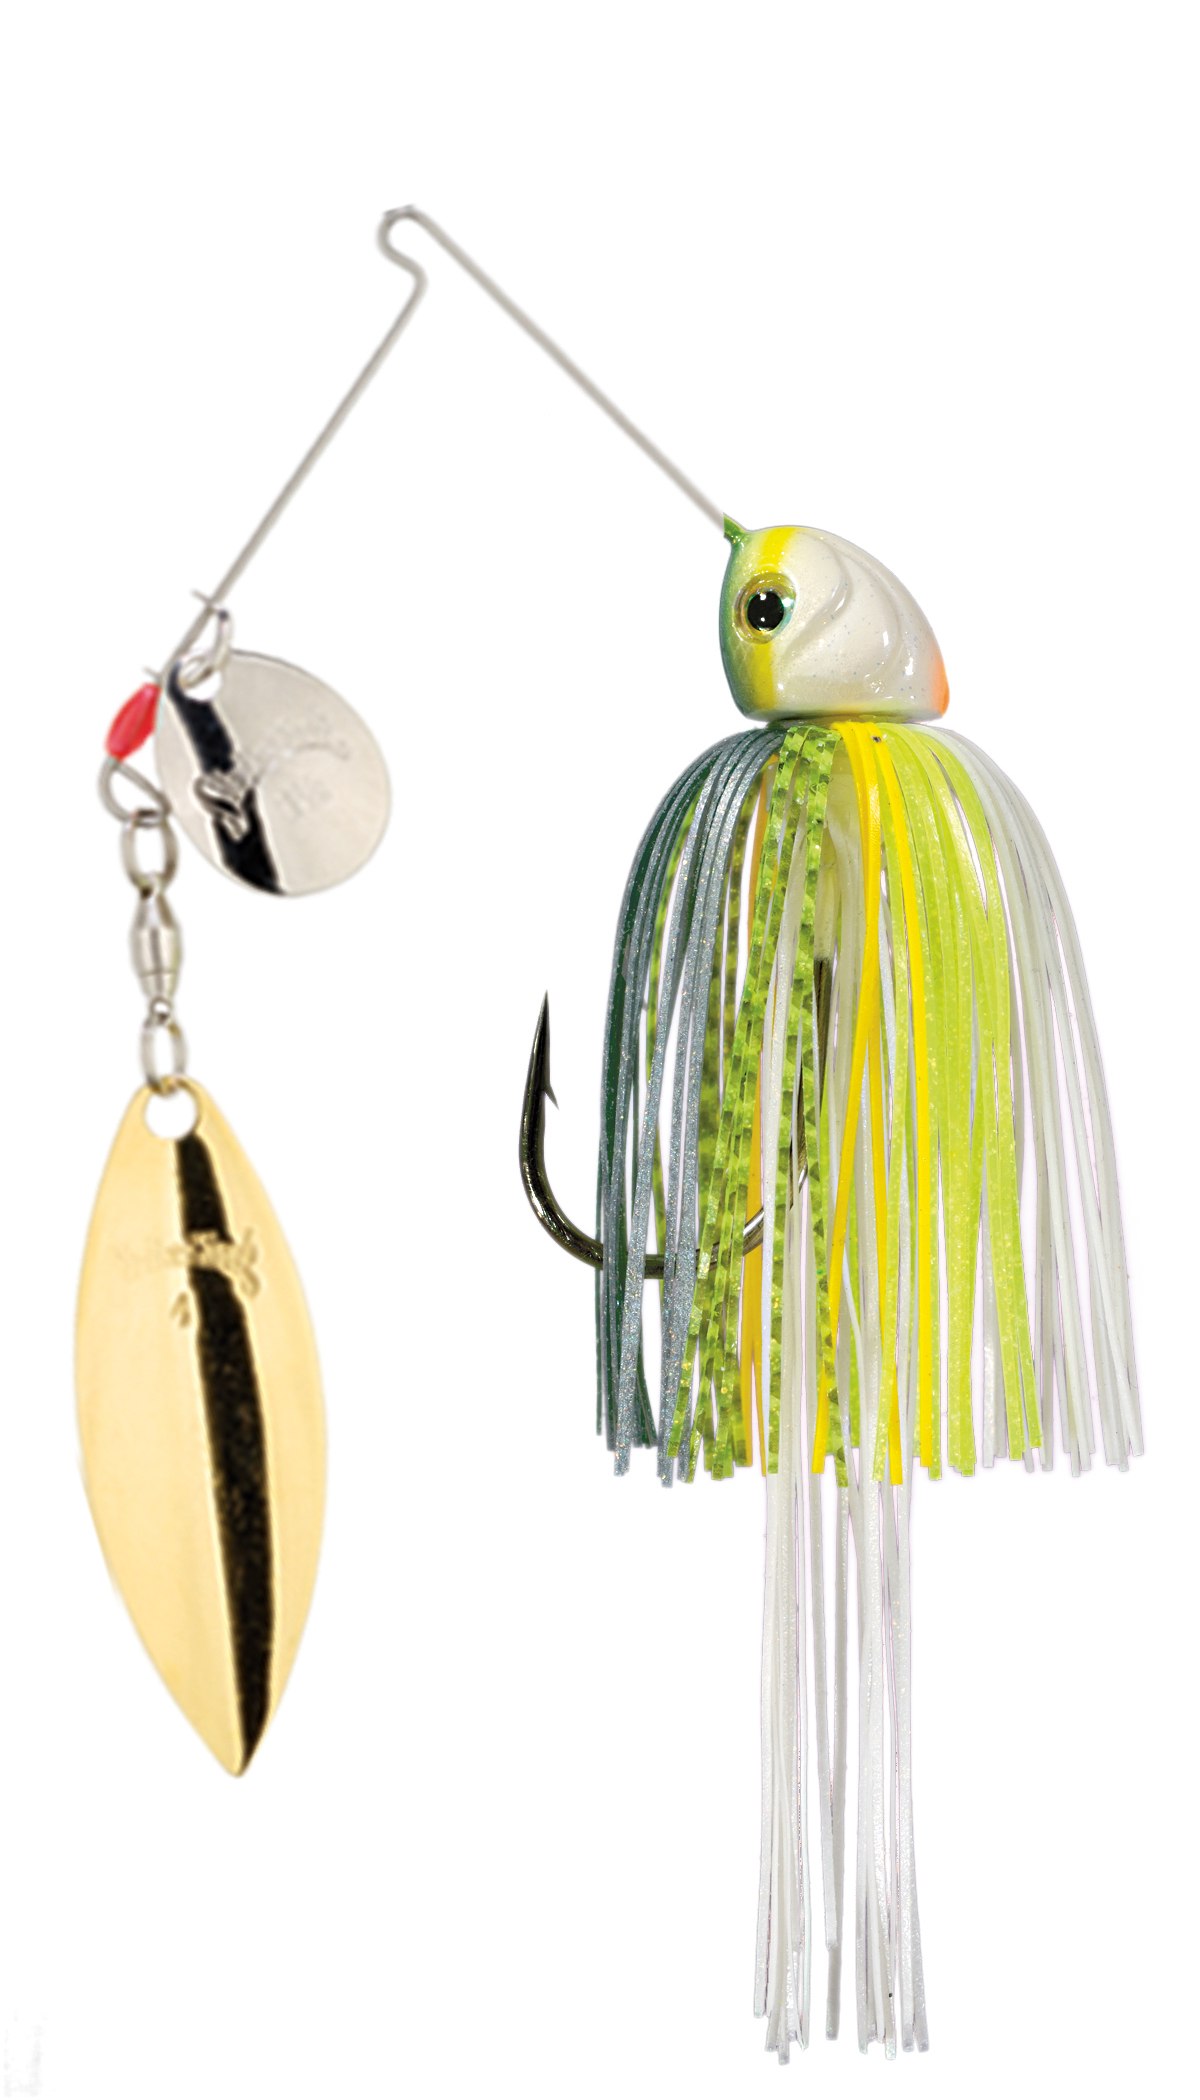 Strike King Lures – Spinnerbaits – Colorado Willow – Hack Attack Heavy Cover - 3/4oz - HAHC34CW-538SG - Chartreuse Sexy Shad